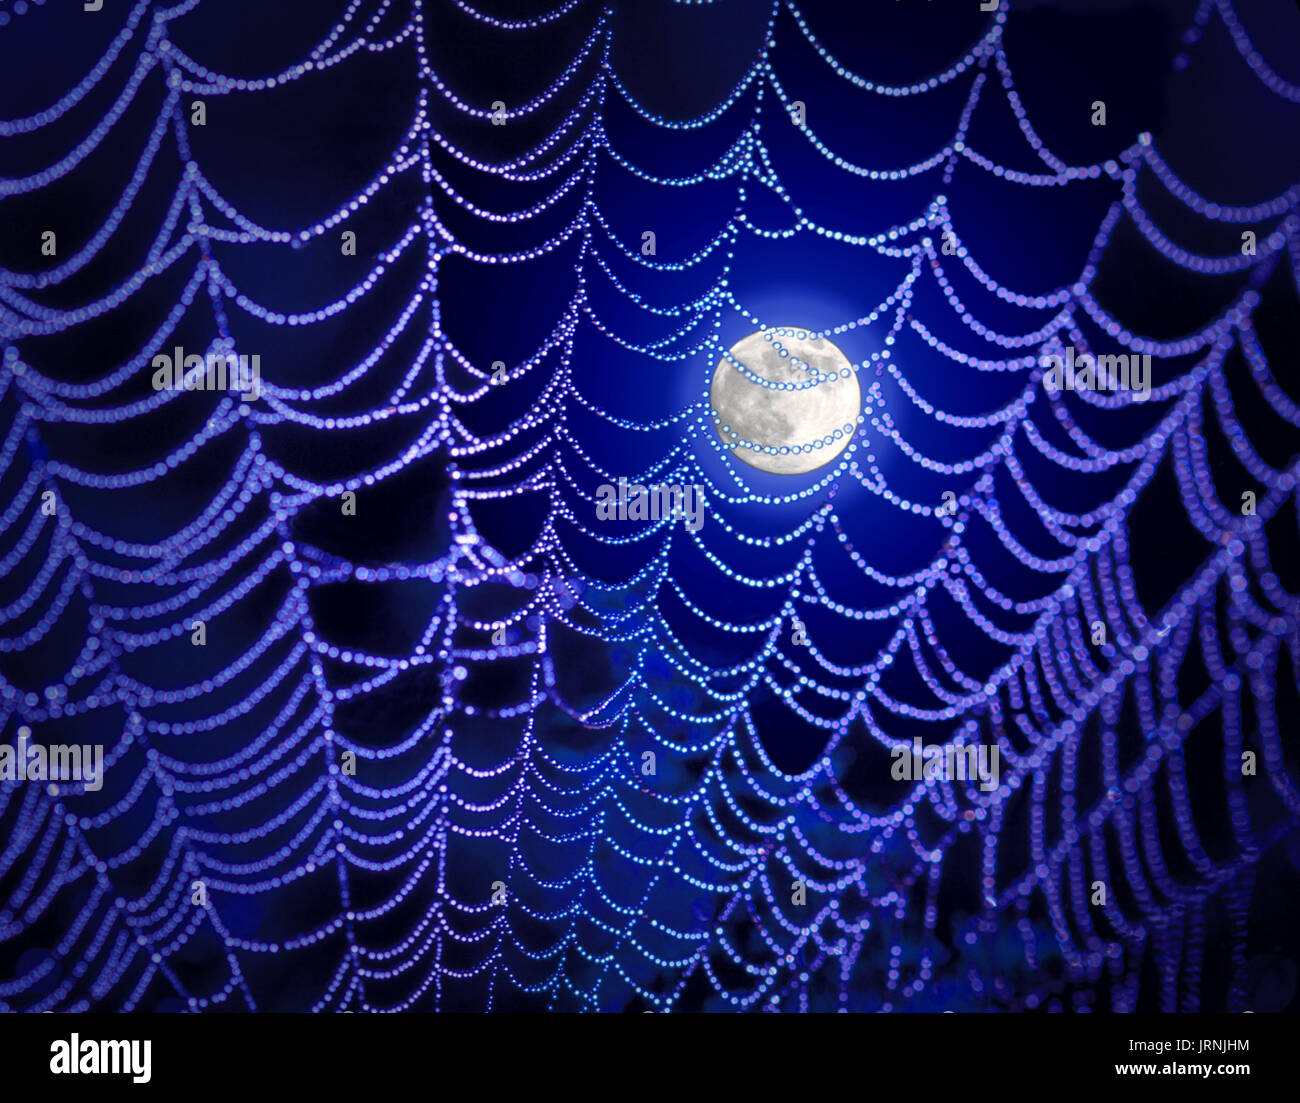 Photo Illustration of the moon and spider web - Stock Image